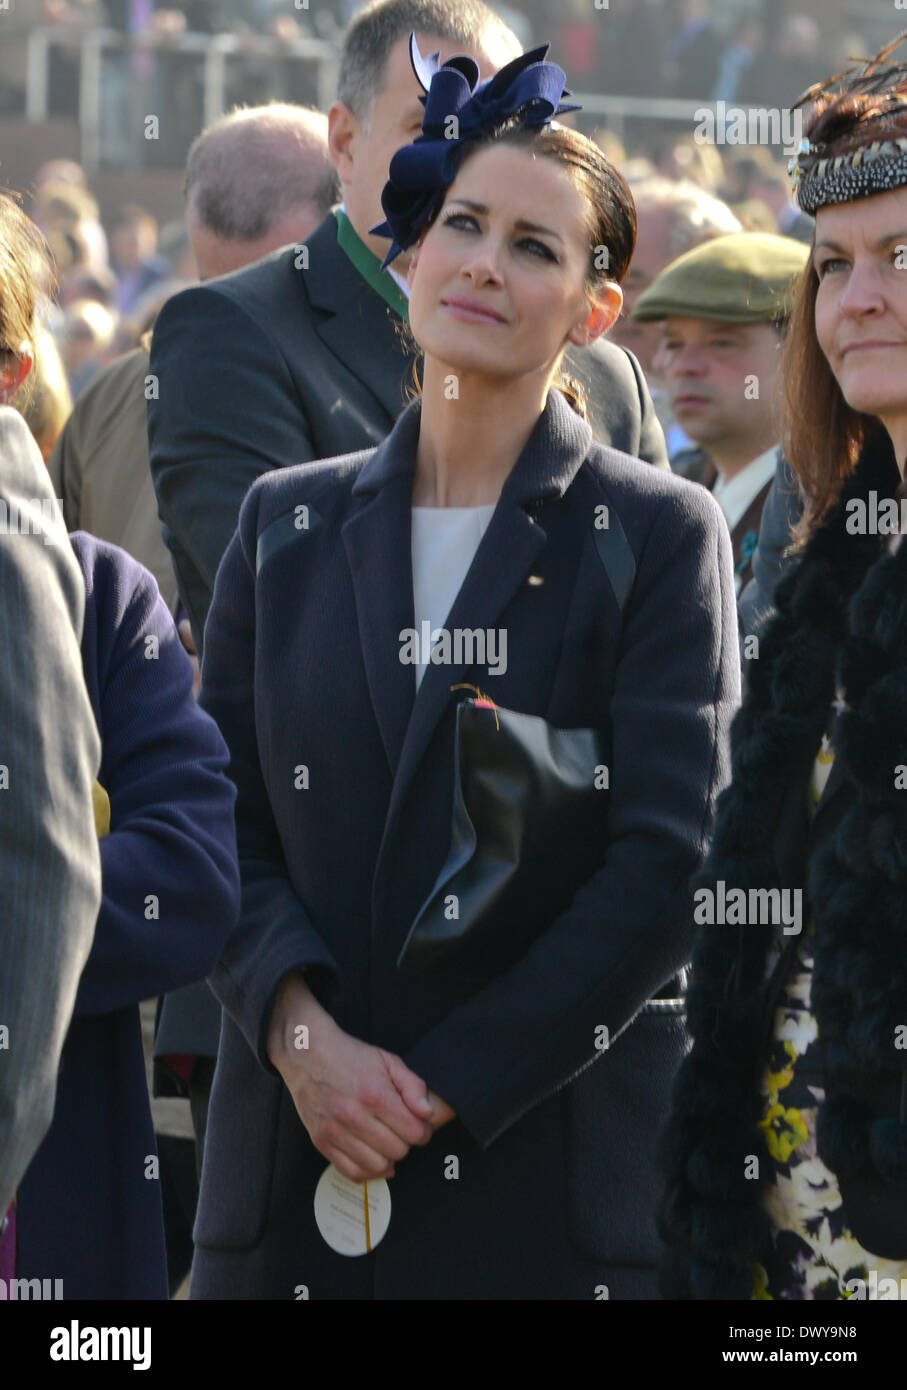 Cheltenham, Gloucestershire, UK . 14th Mar, 2014. Kirsty Gallacher at Cheltenham Gold Cup Festival 2014, day 4, The Cheltenham Gold Cup. Credit:  jules annan/Alamy Live News Stock Photo